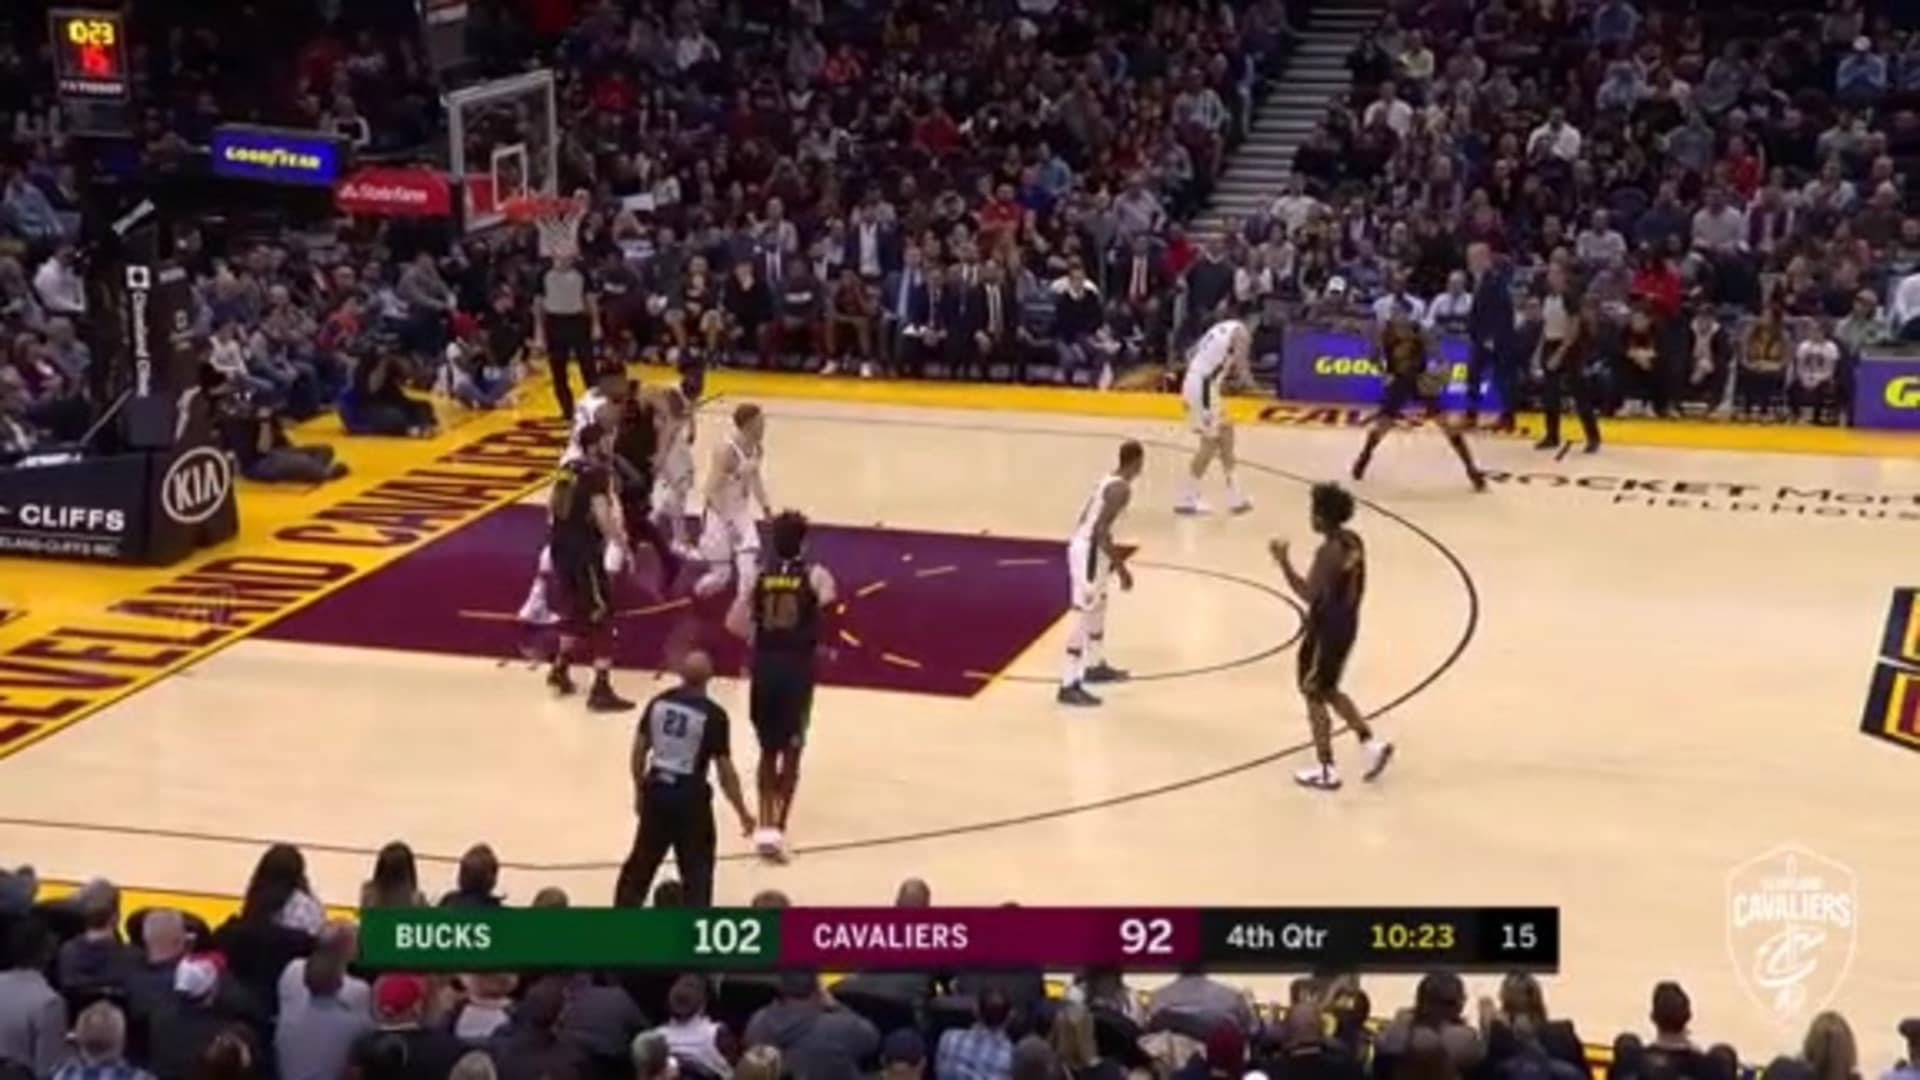 Cavs Cut Deficit to Single Digits with Clarkson Dish